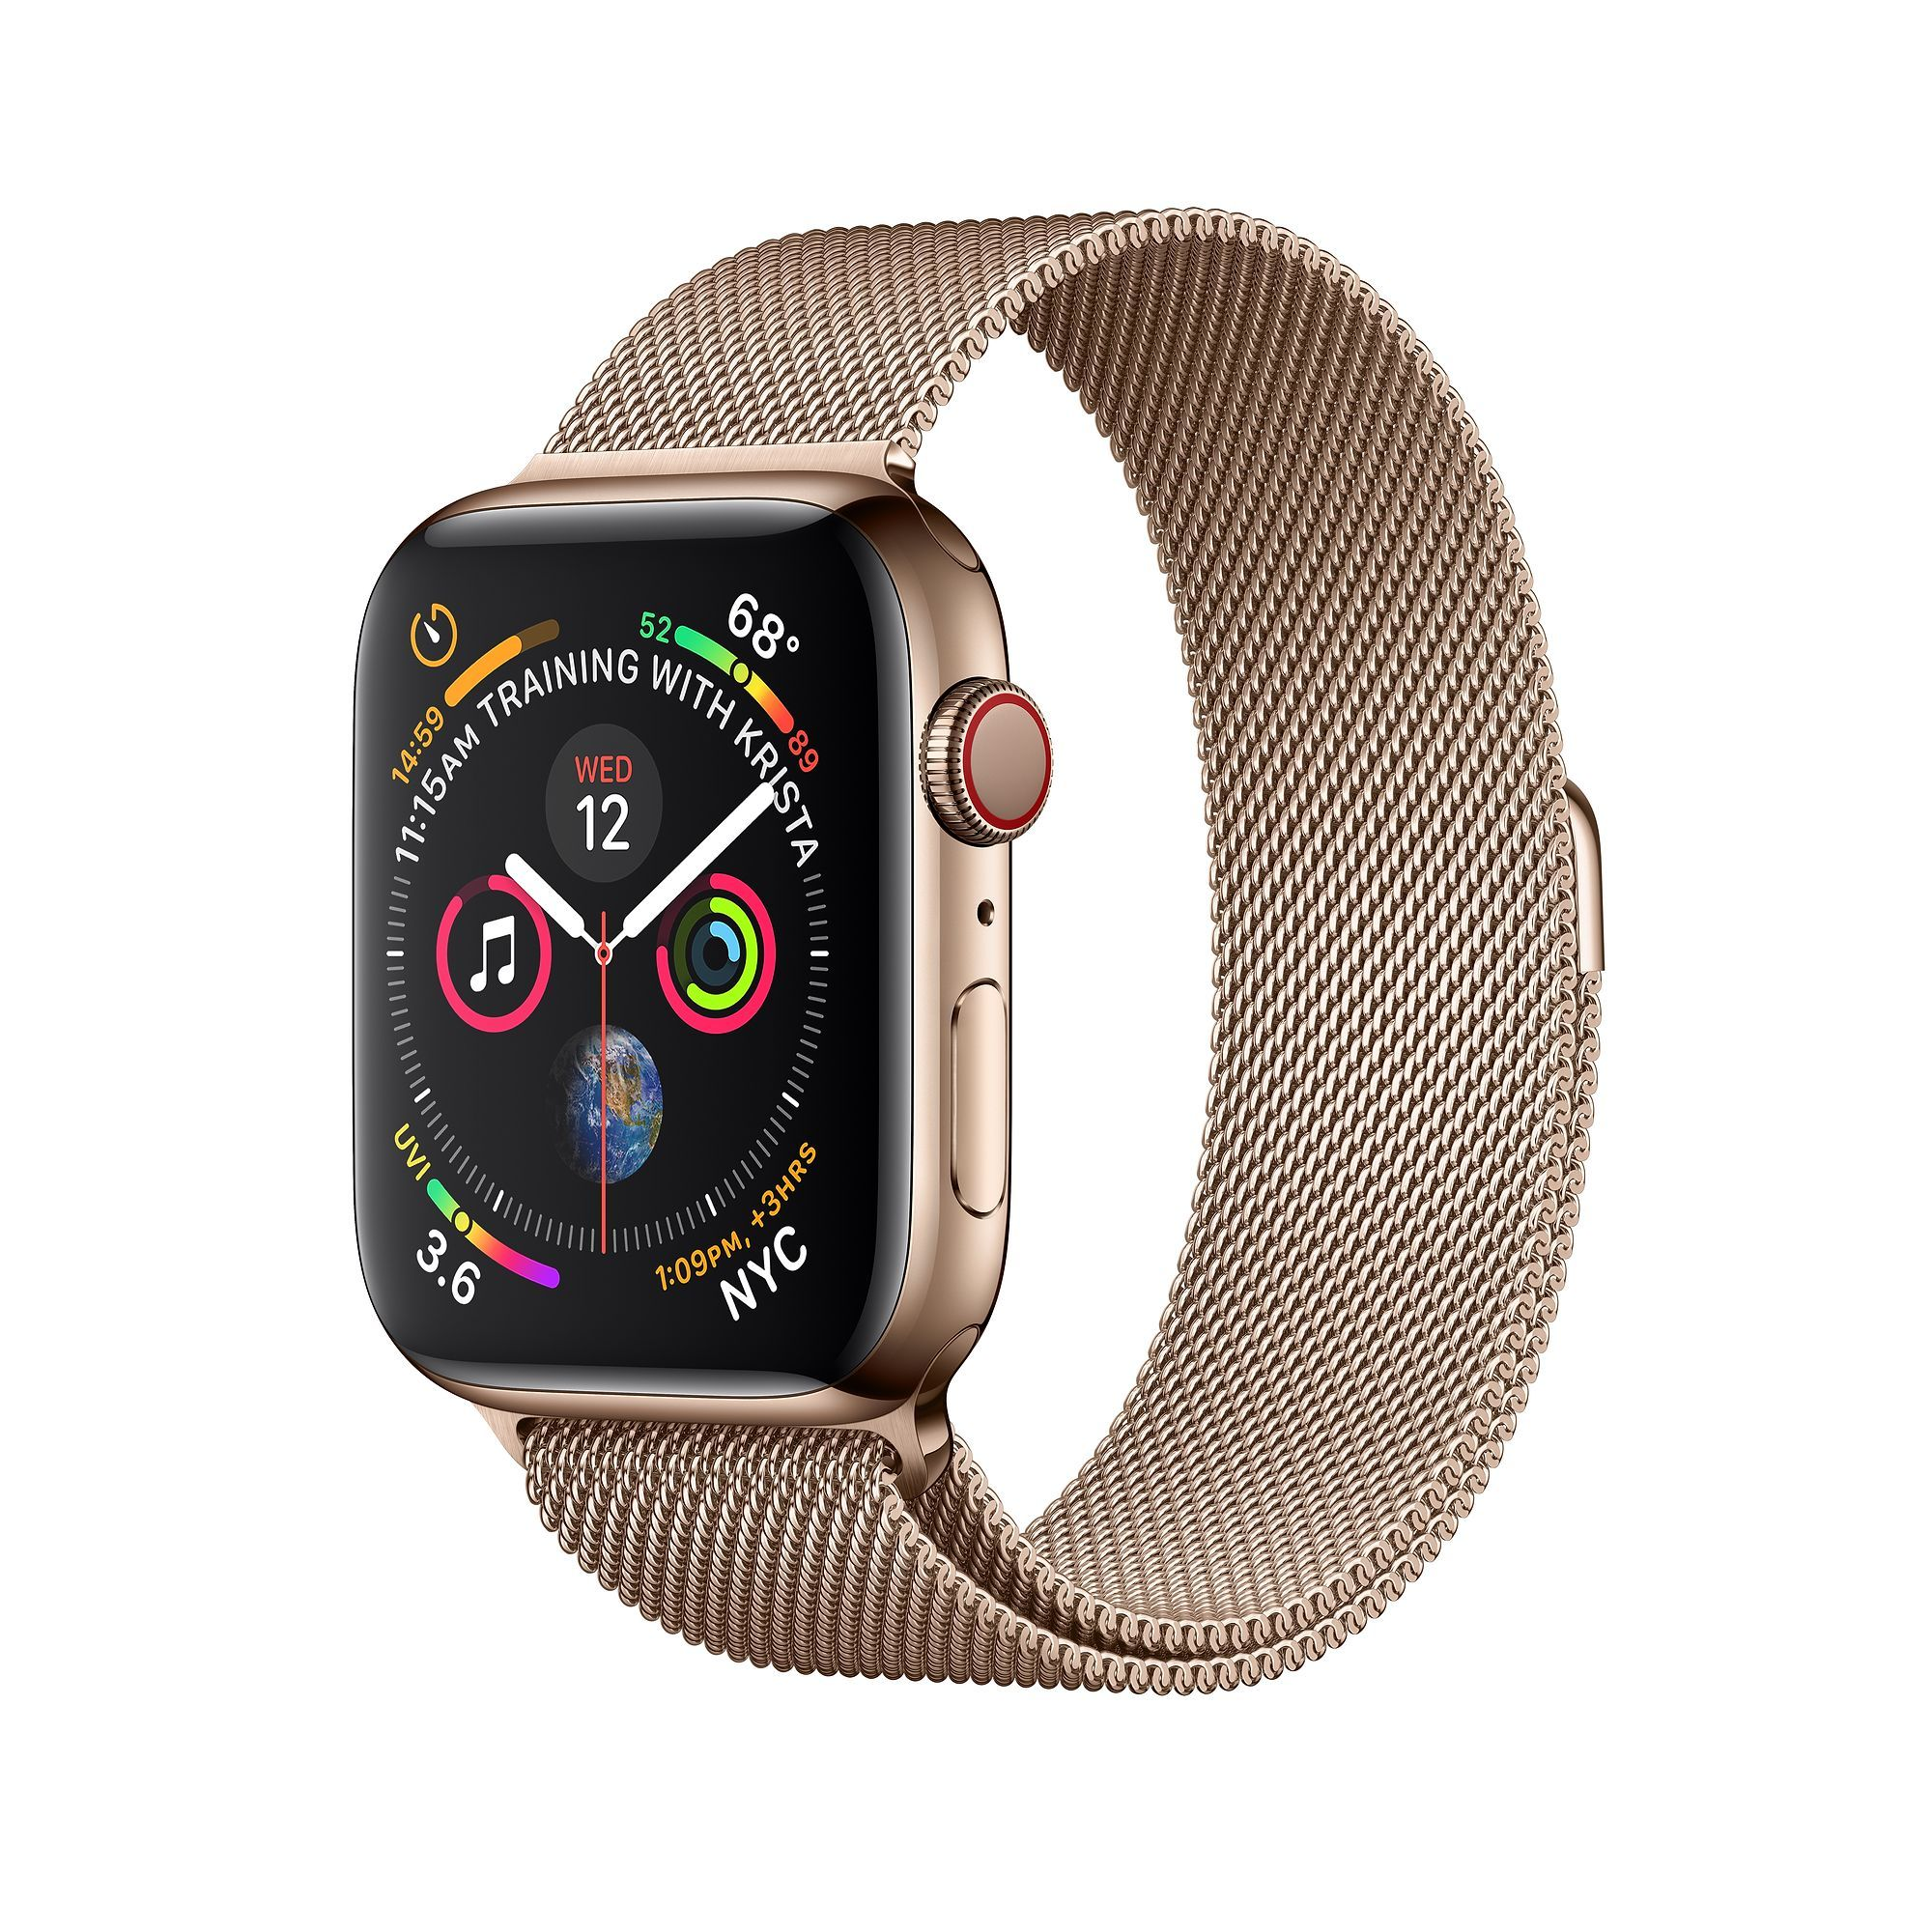 6ad143c5a5e Apple Watch - Gold Stainless Steel Case with Gold Milanese Loop - Education  - Apple